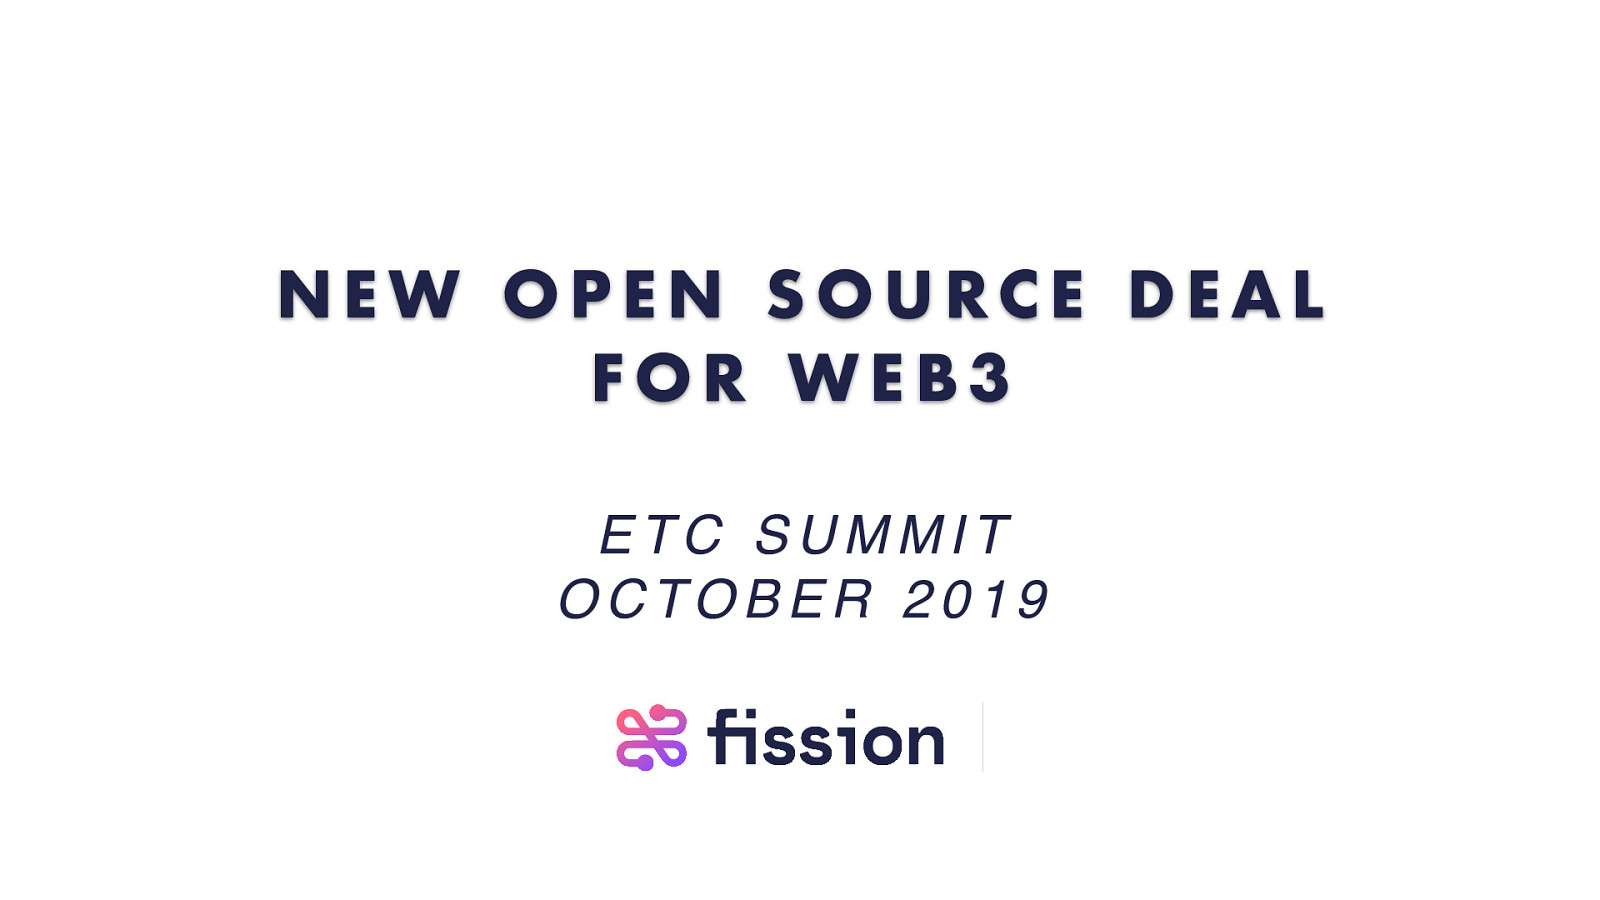 A new open source deal for Web3